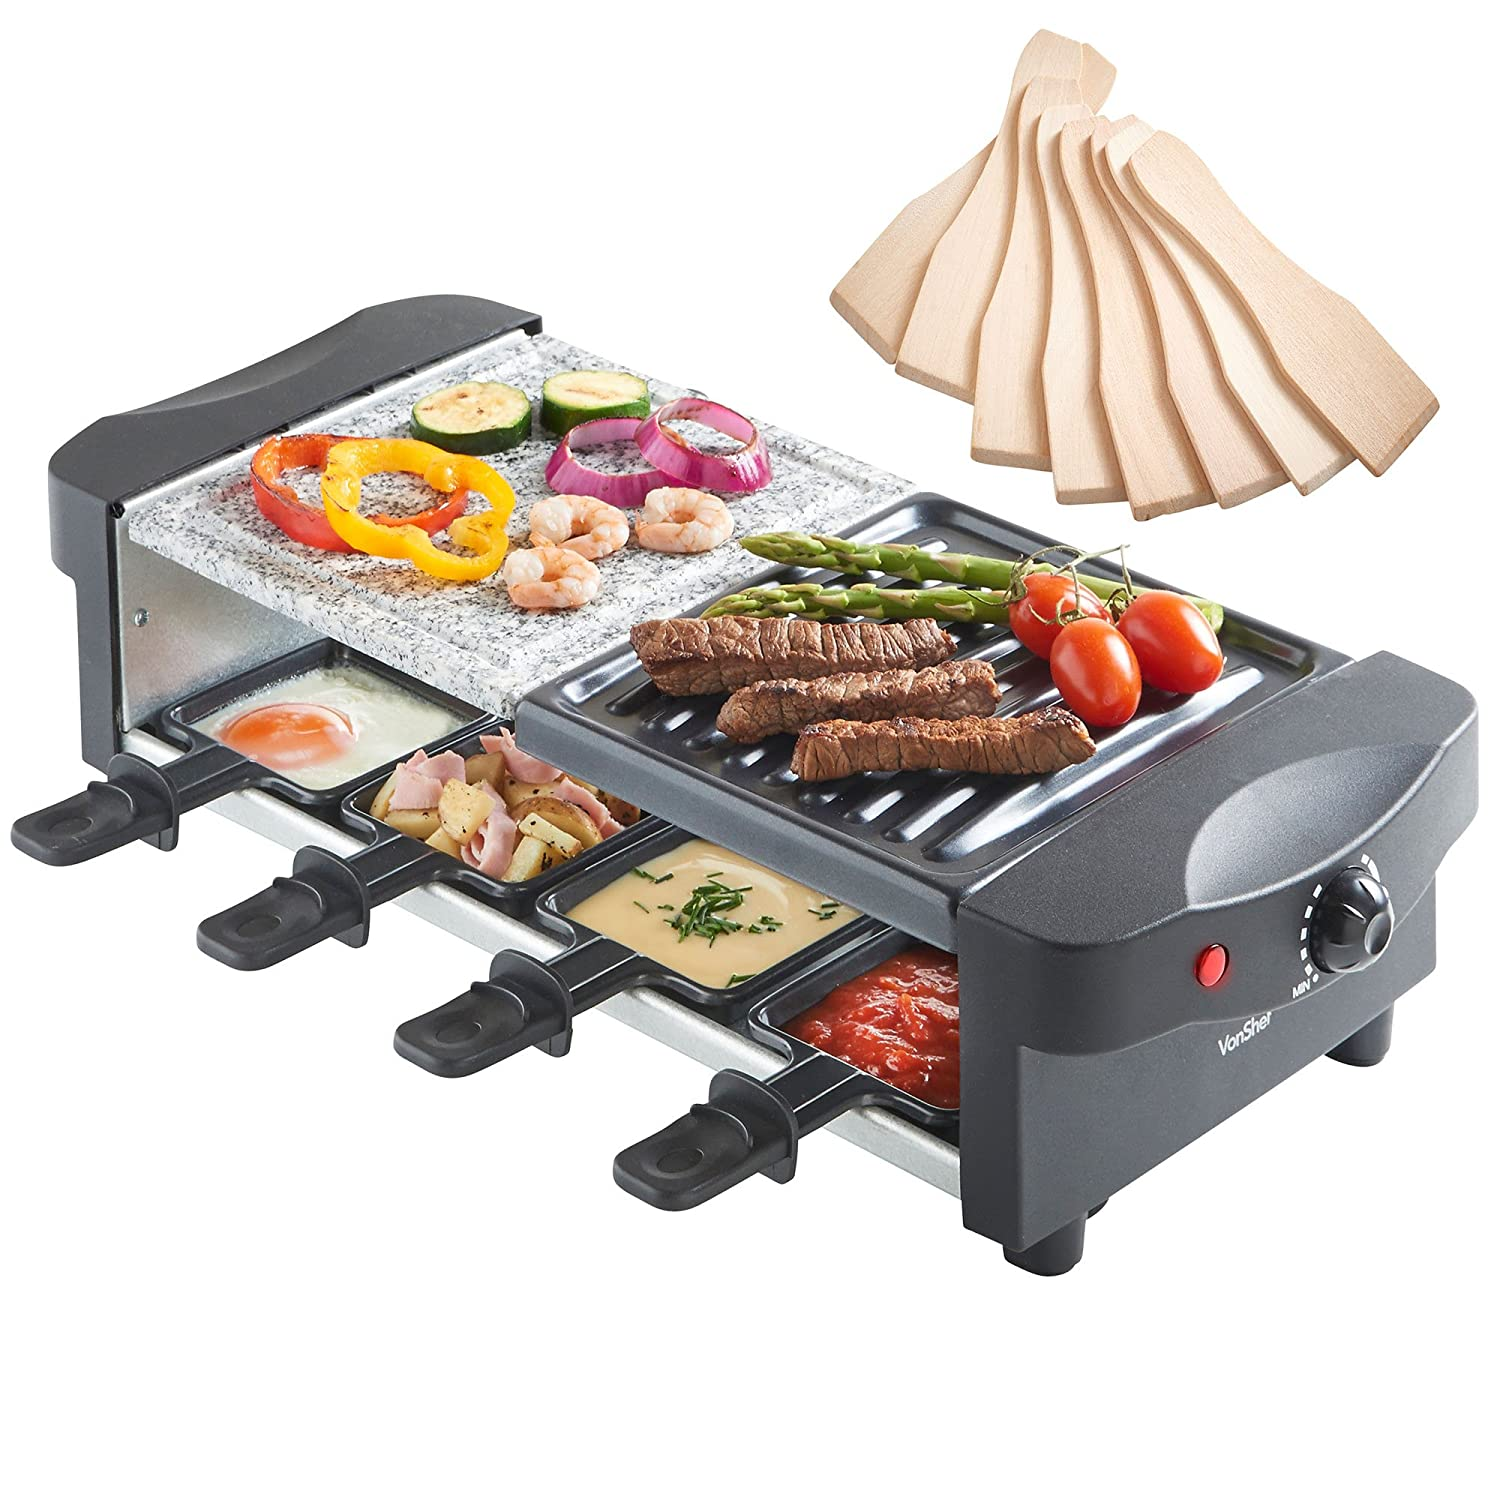 swiss raclette grill images galleries with a bite. Black Bedroom Furniture Sets. Home Design Ideas